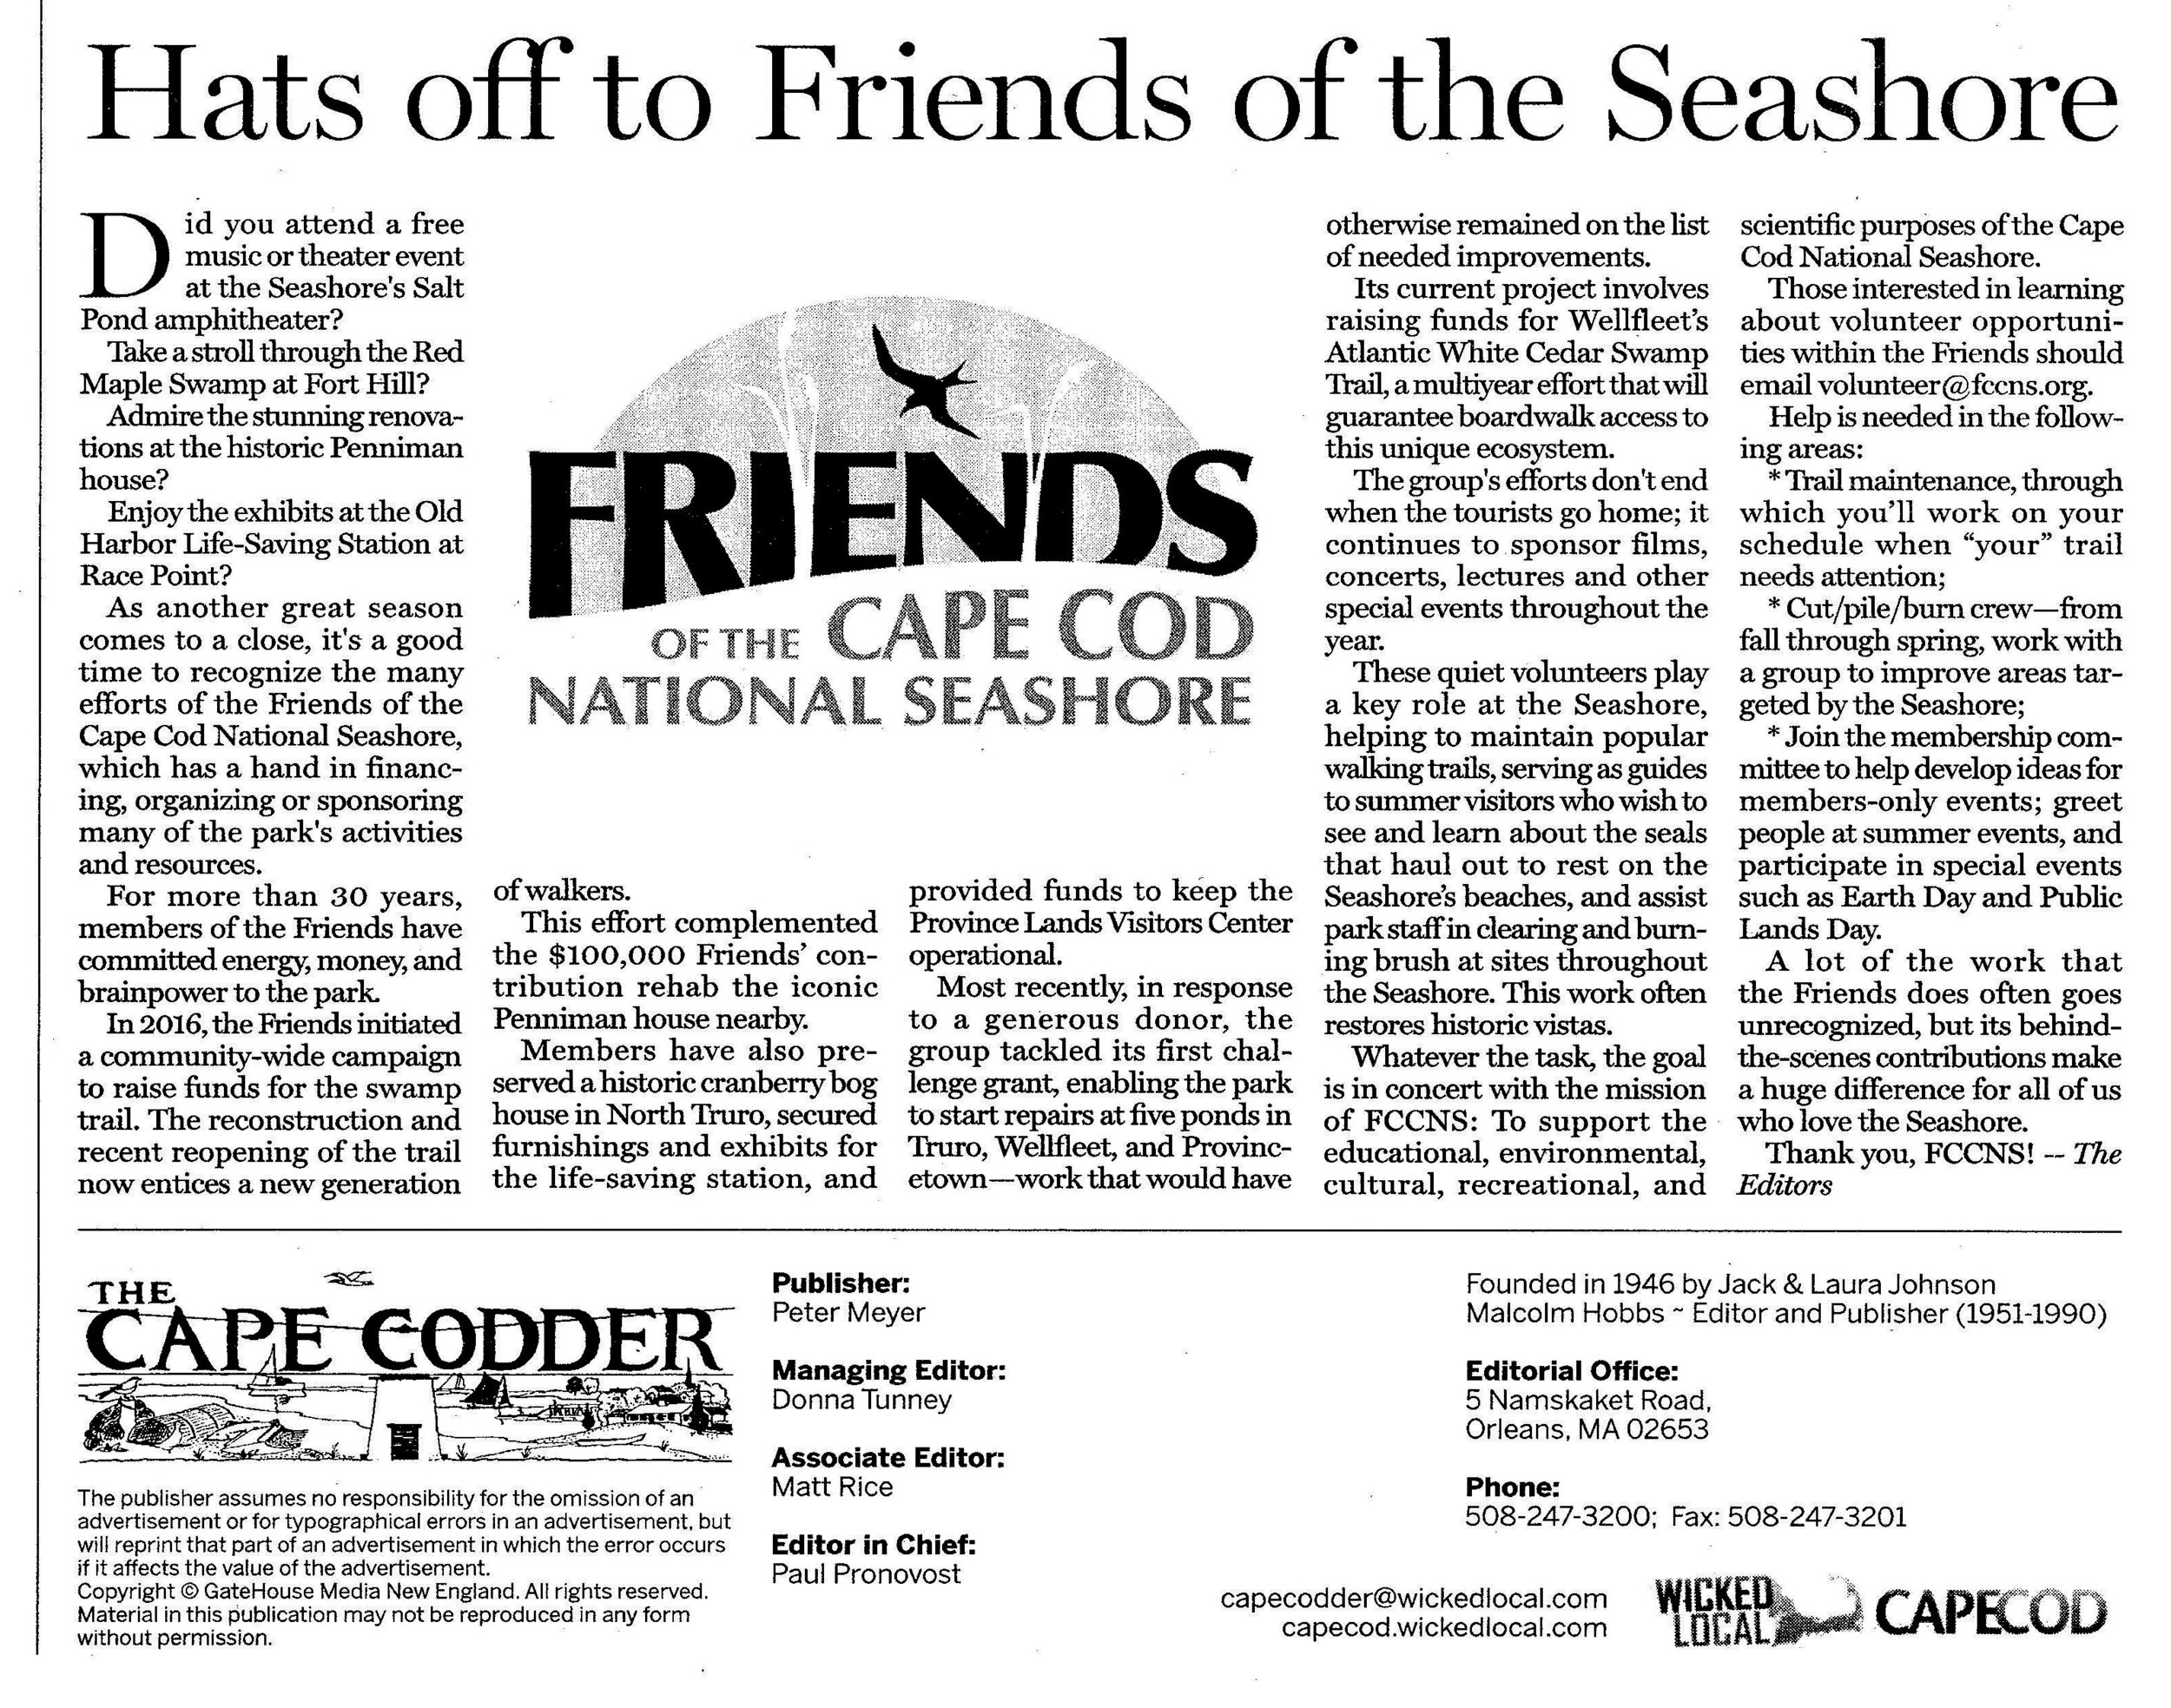 Hats off to Friends from the Cape Codder - Click HERE to read the recent editorial from the August 30, 2019 issue of the Cape Codder.